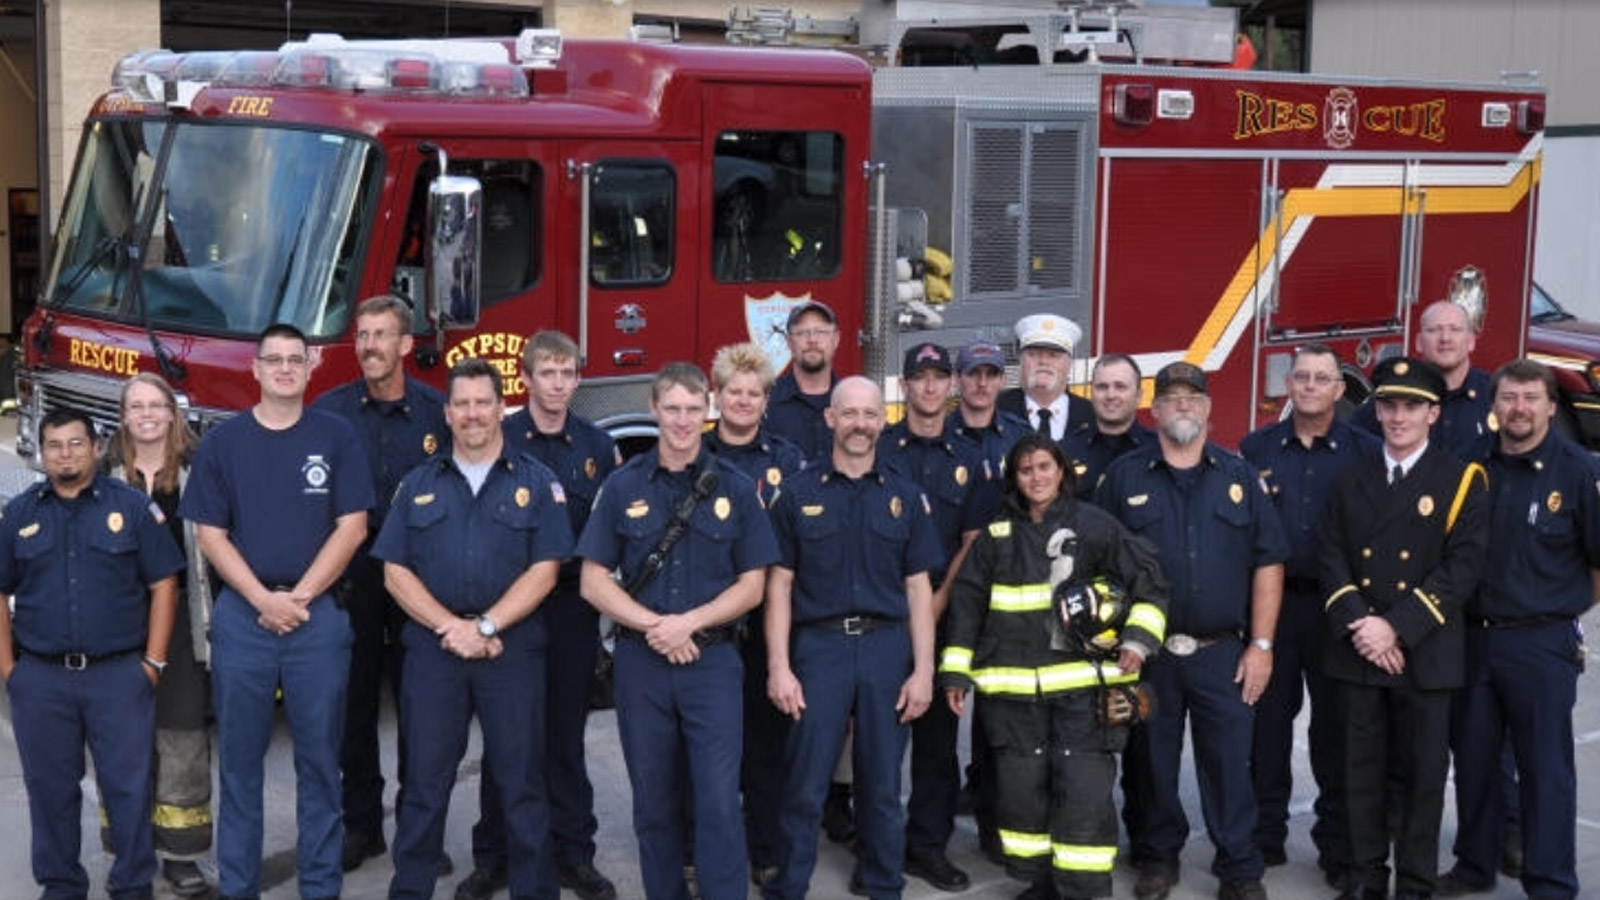 (credit: Gypsum Fire Protection District)